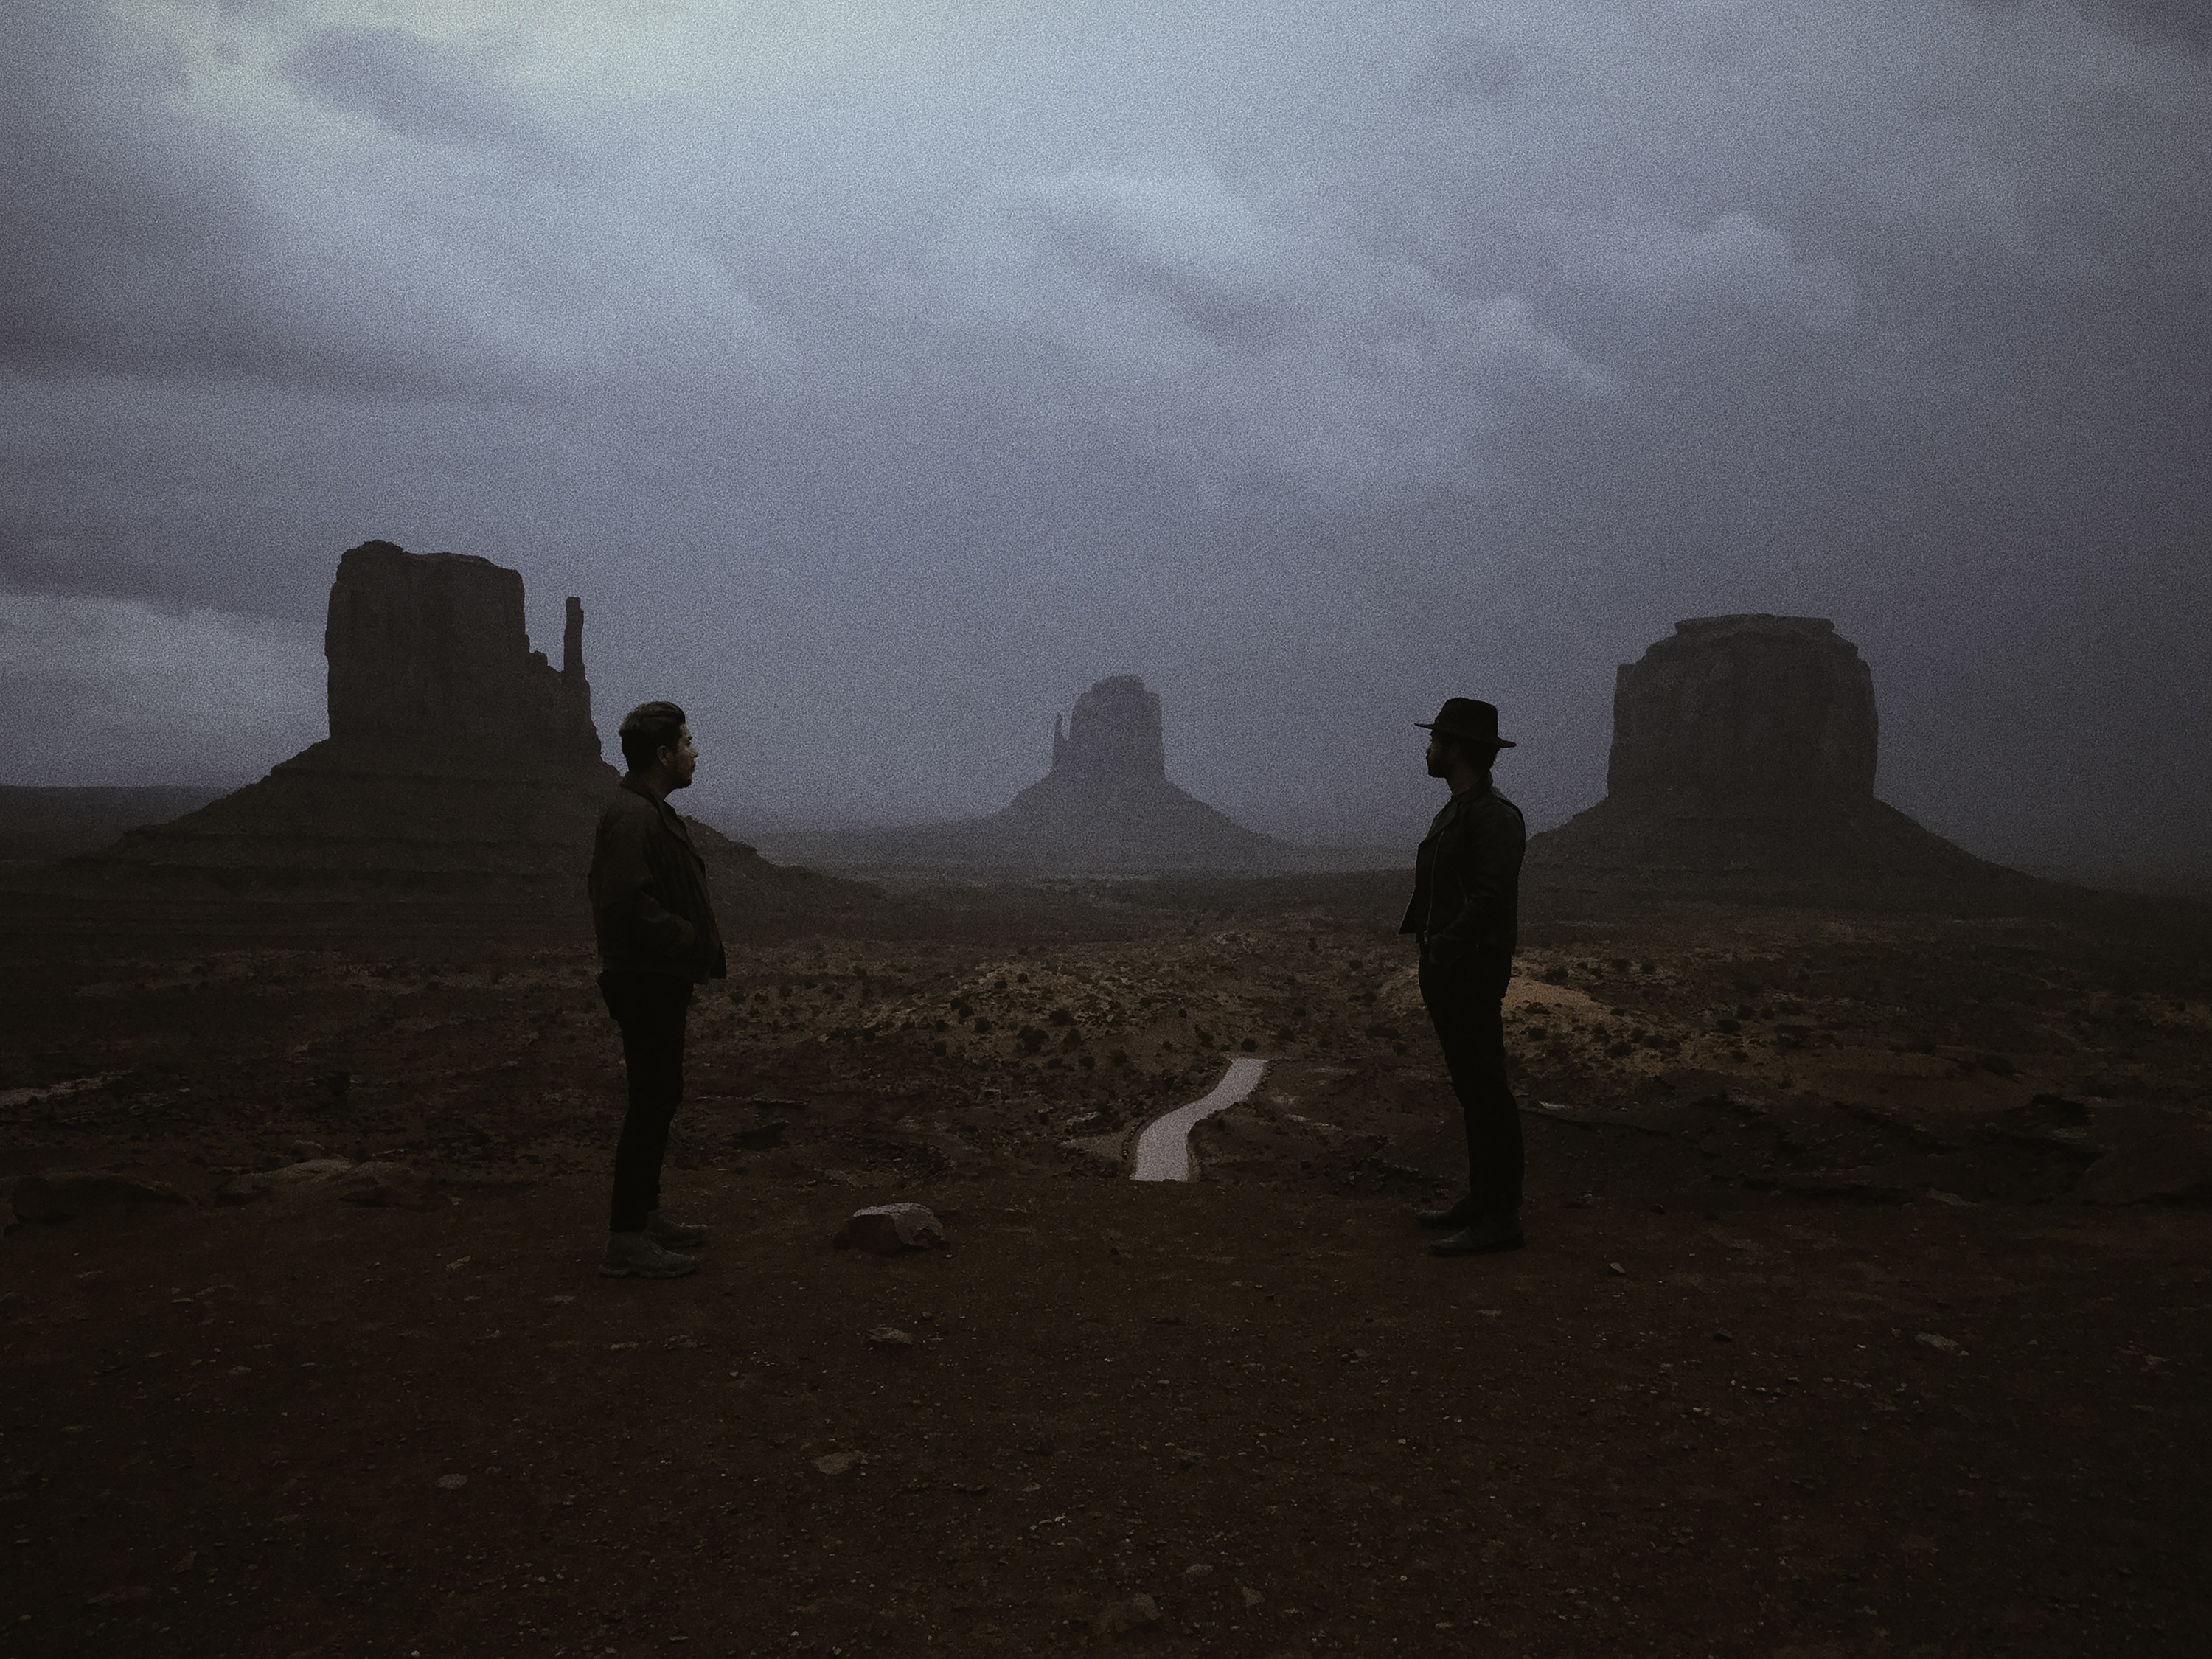 Two men, one in a hat, staring out over a landscape with buttes and a road on a cloudy day.